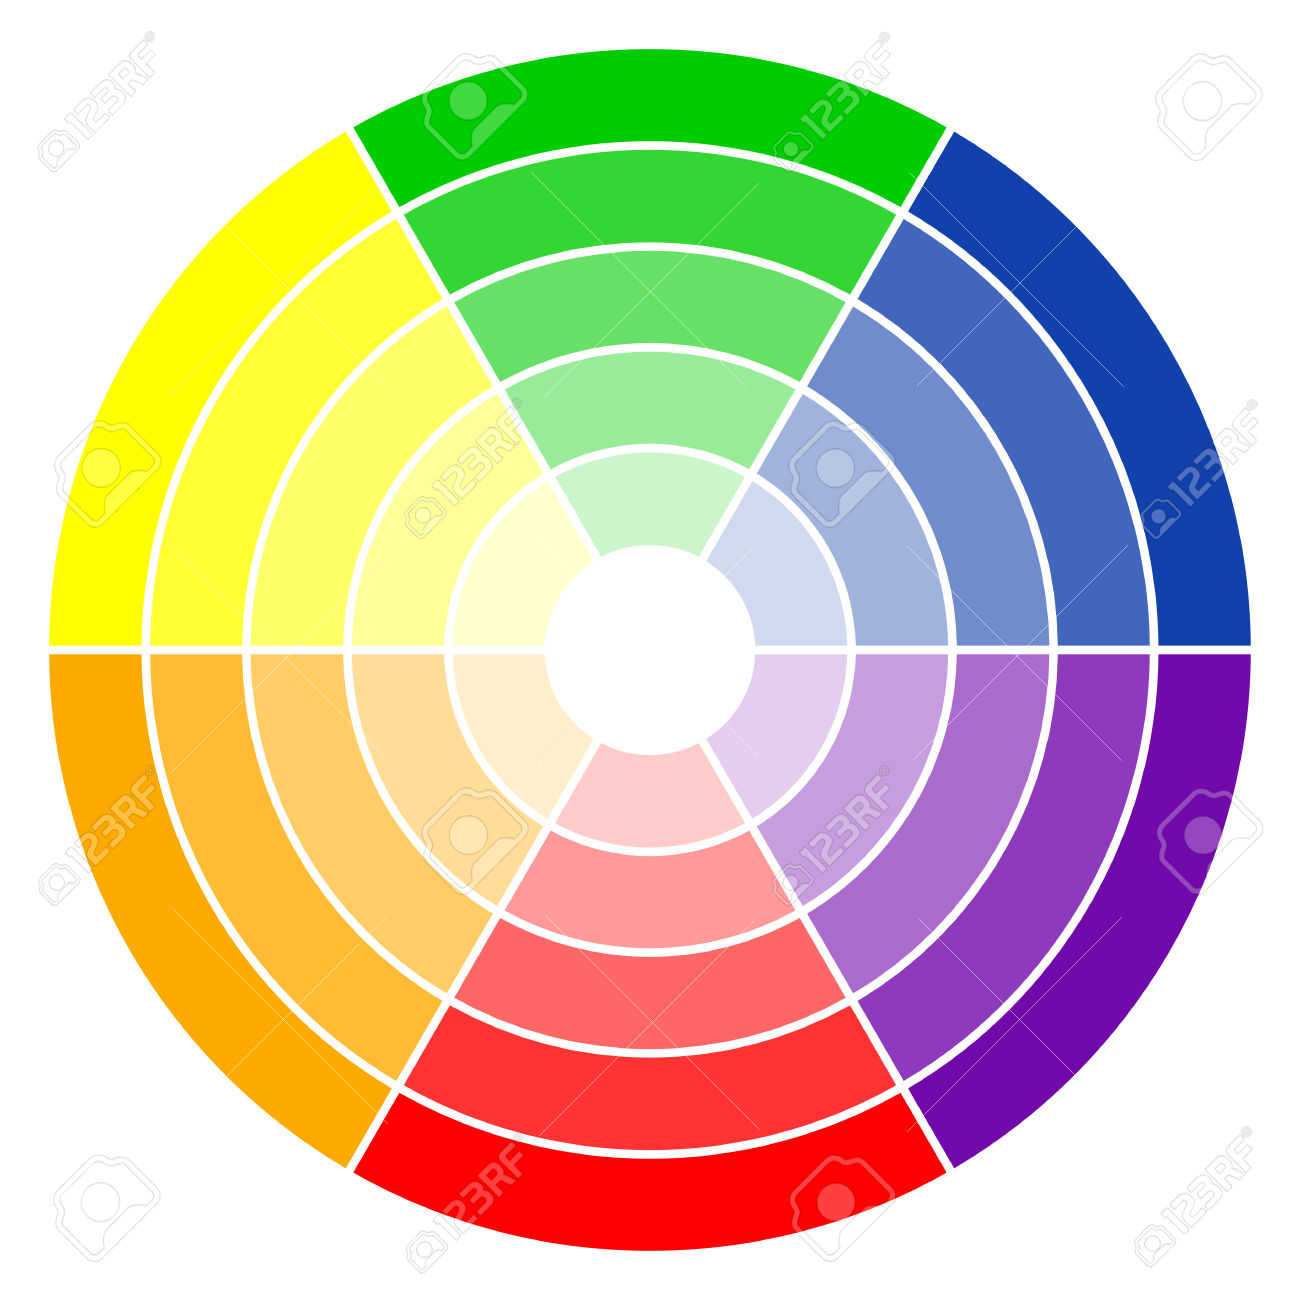 Illustration Of Printing Color Wheel With Six Colors In Gradations.